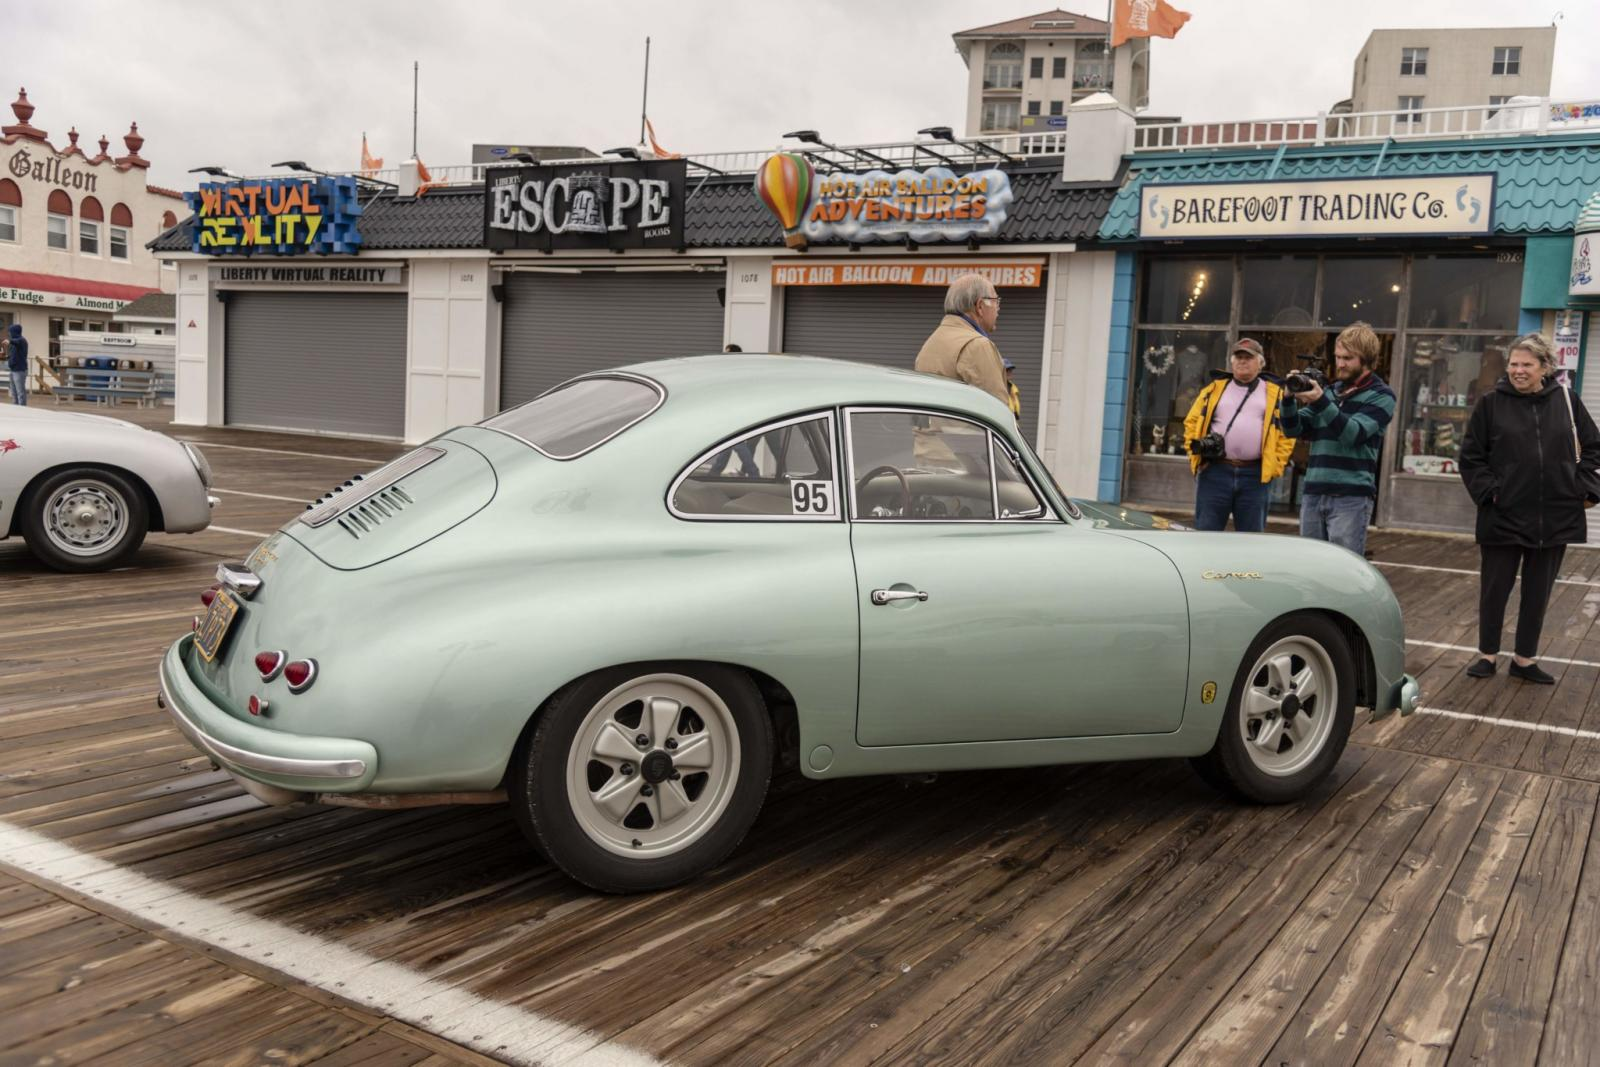 Porsche 356 owners East Coast Holiday 2018